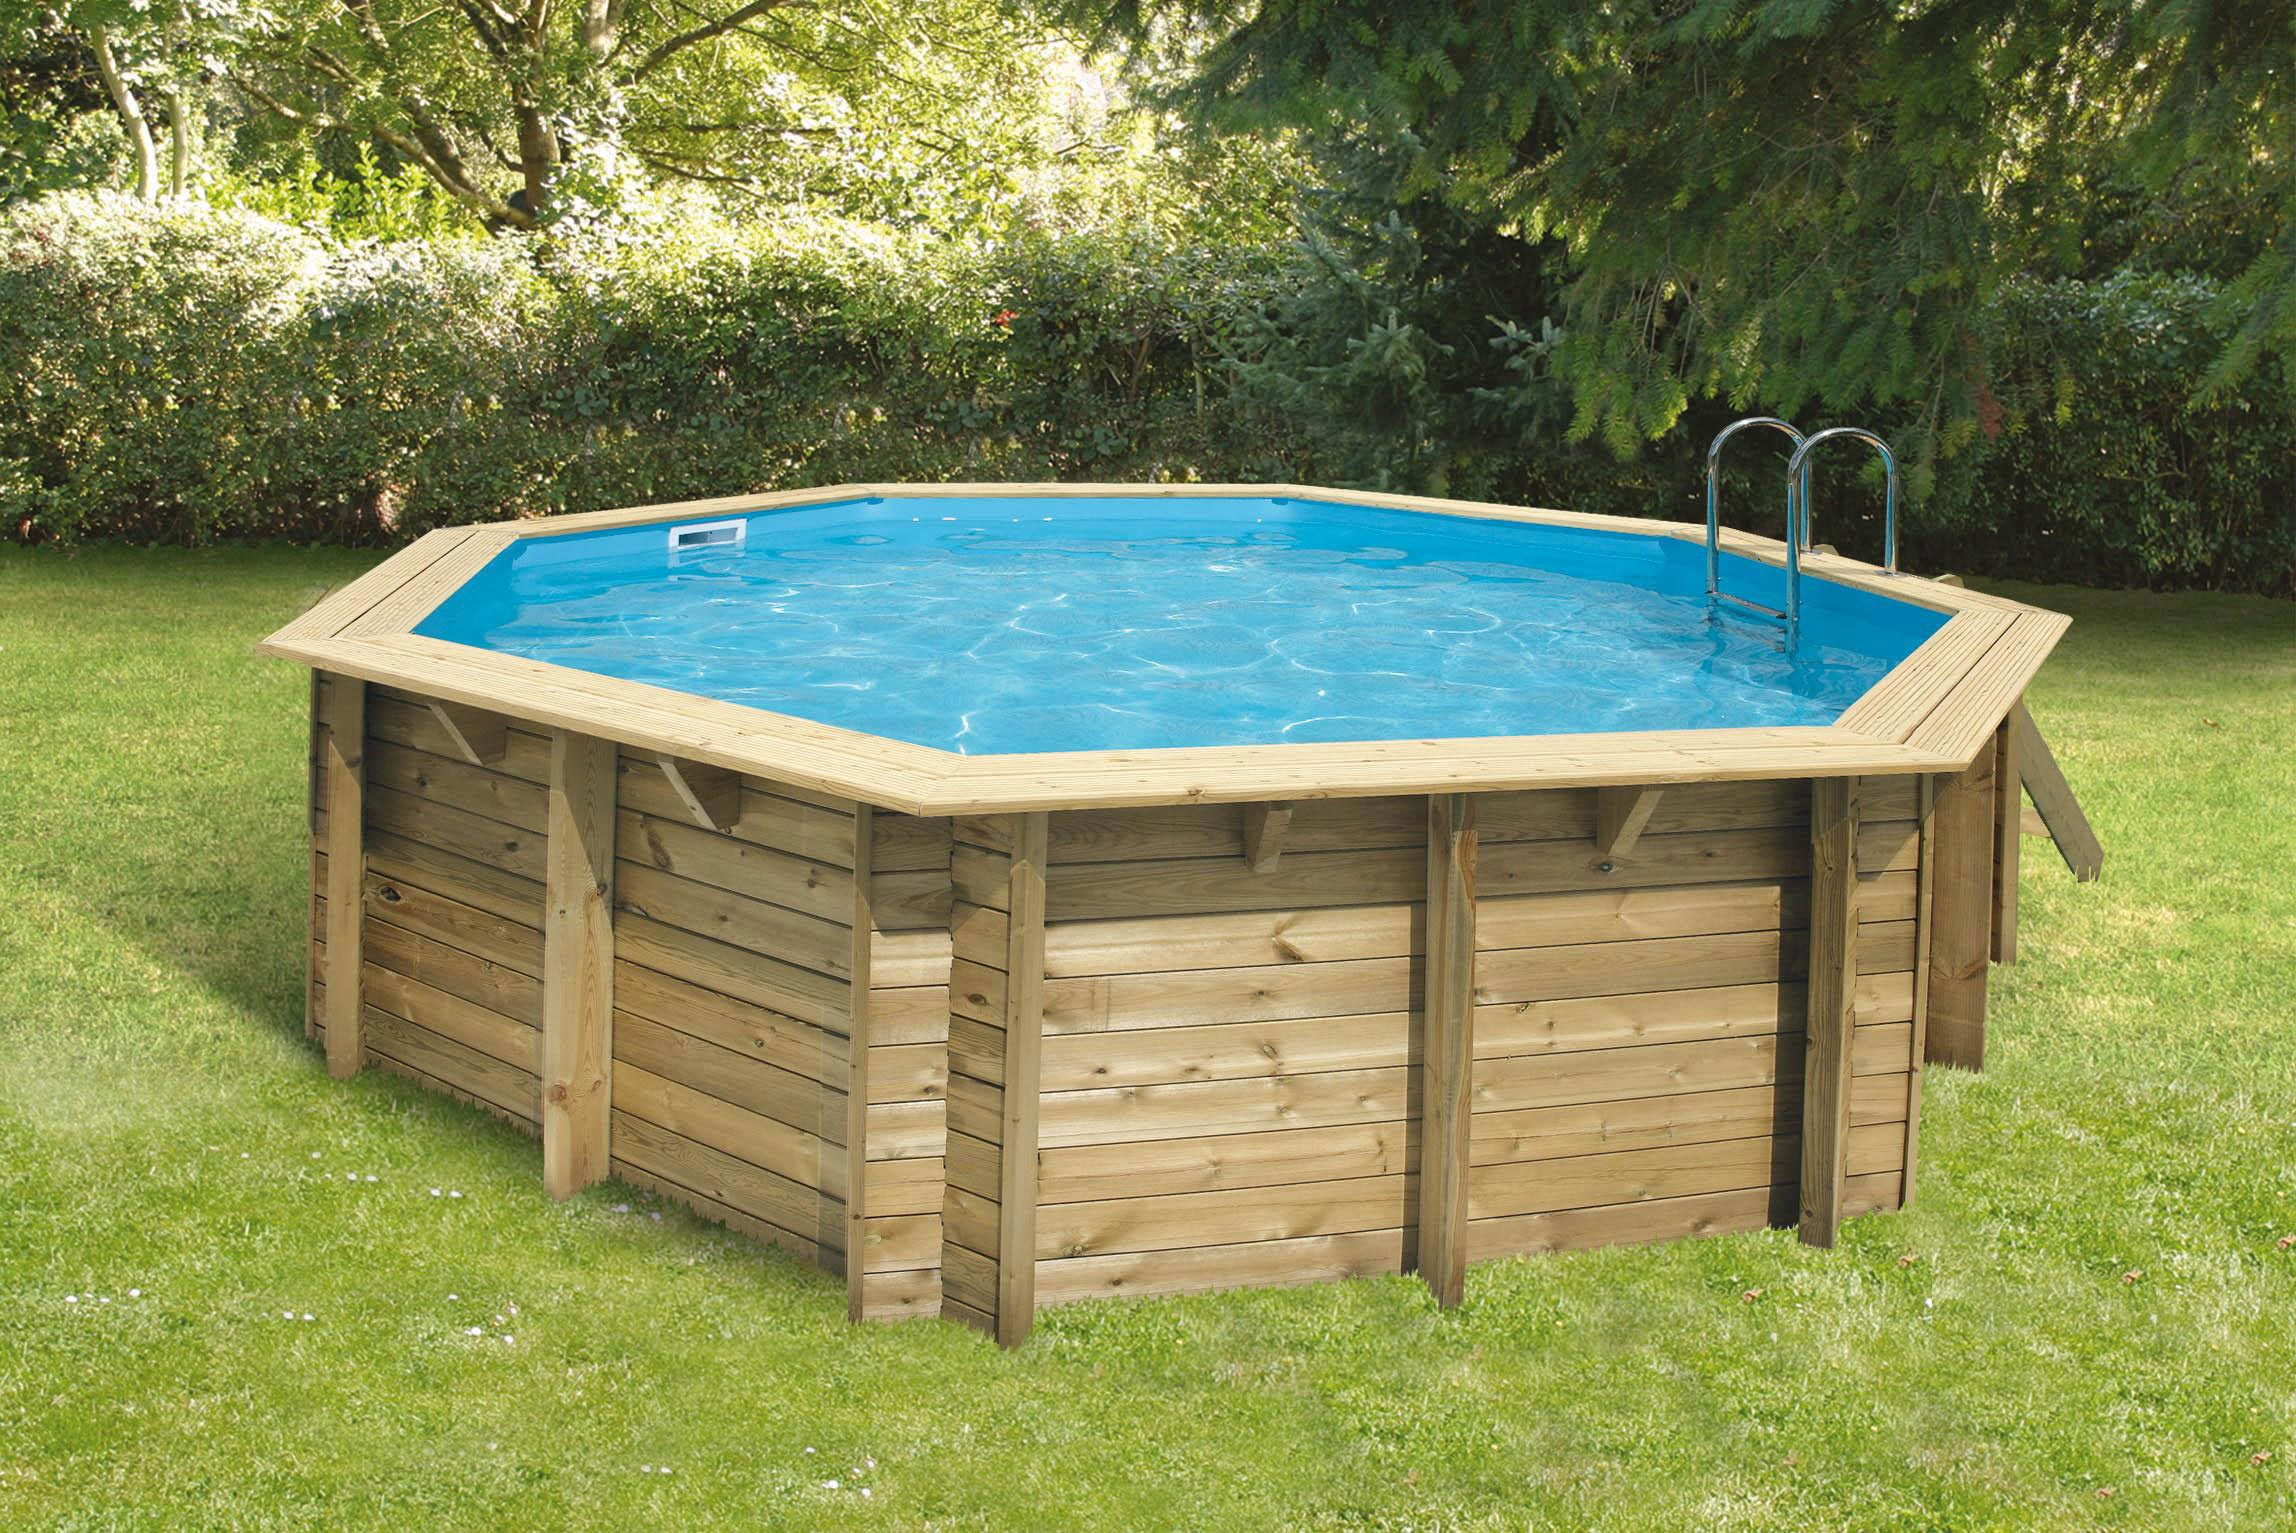 Piscine de jardin images et photos arts et voyages for Piscine 2x3